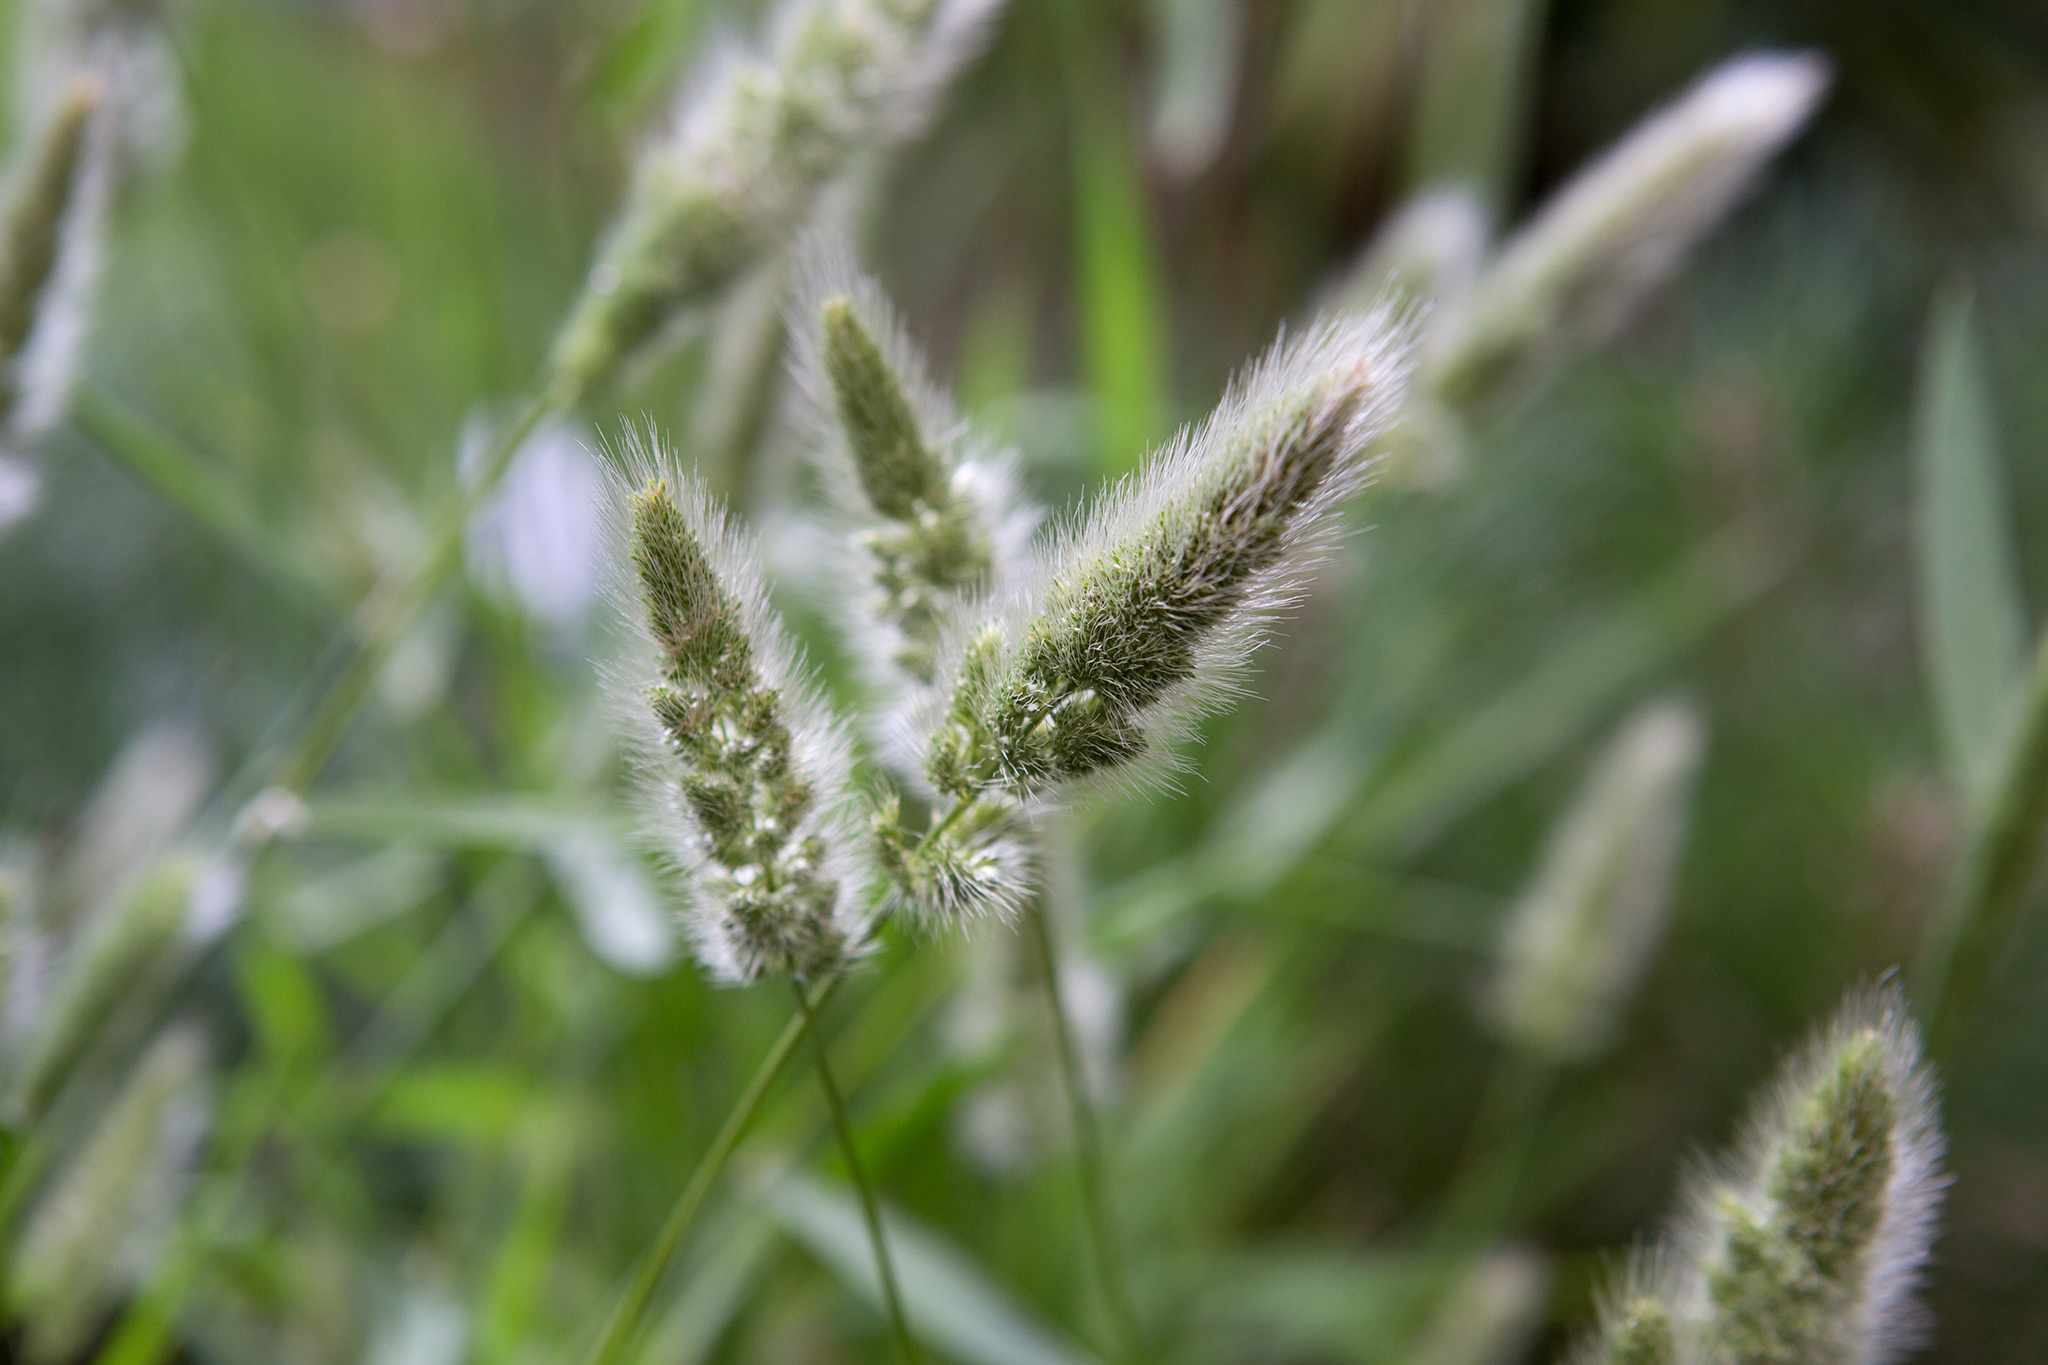 How to cut back ornamental grasses in spring